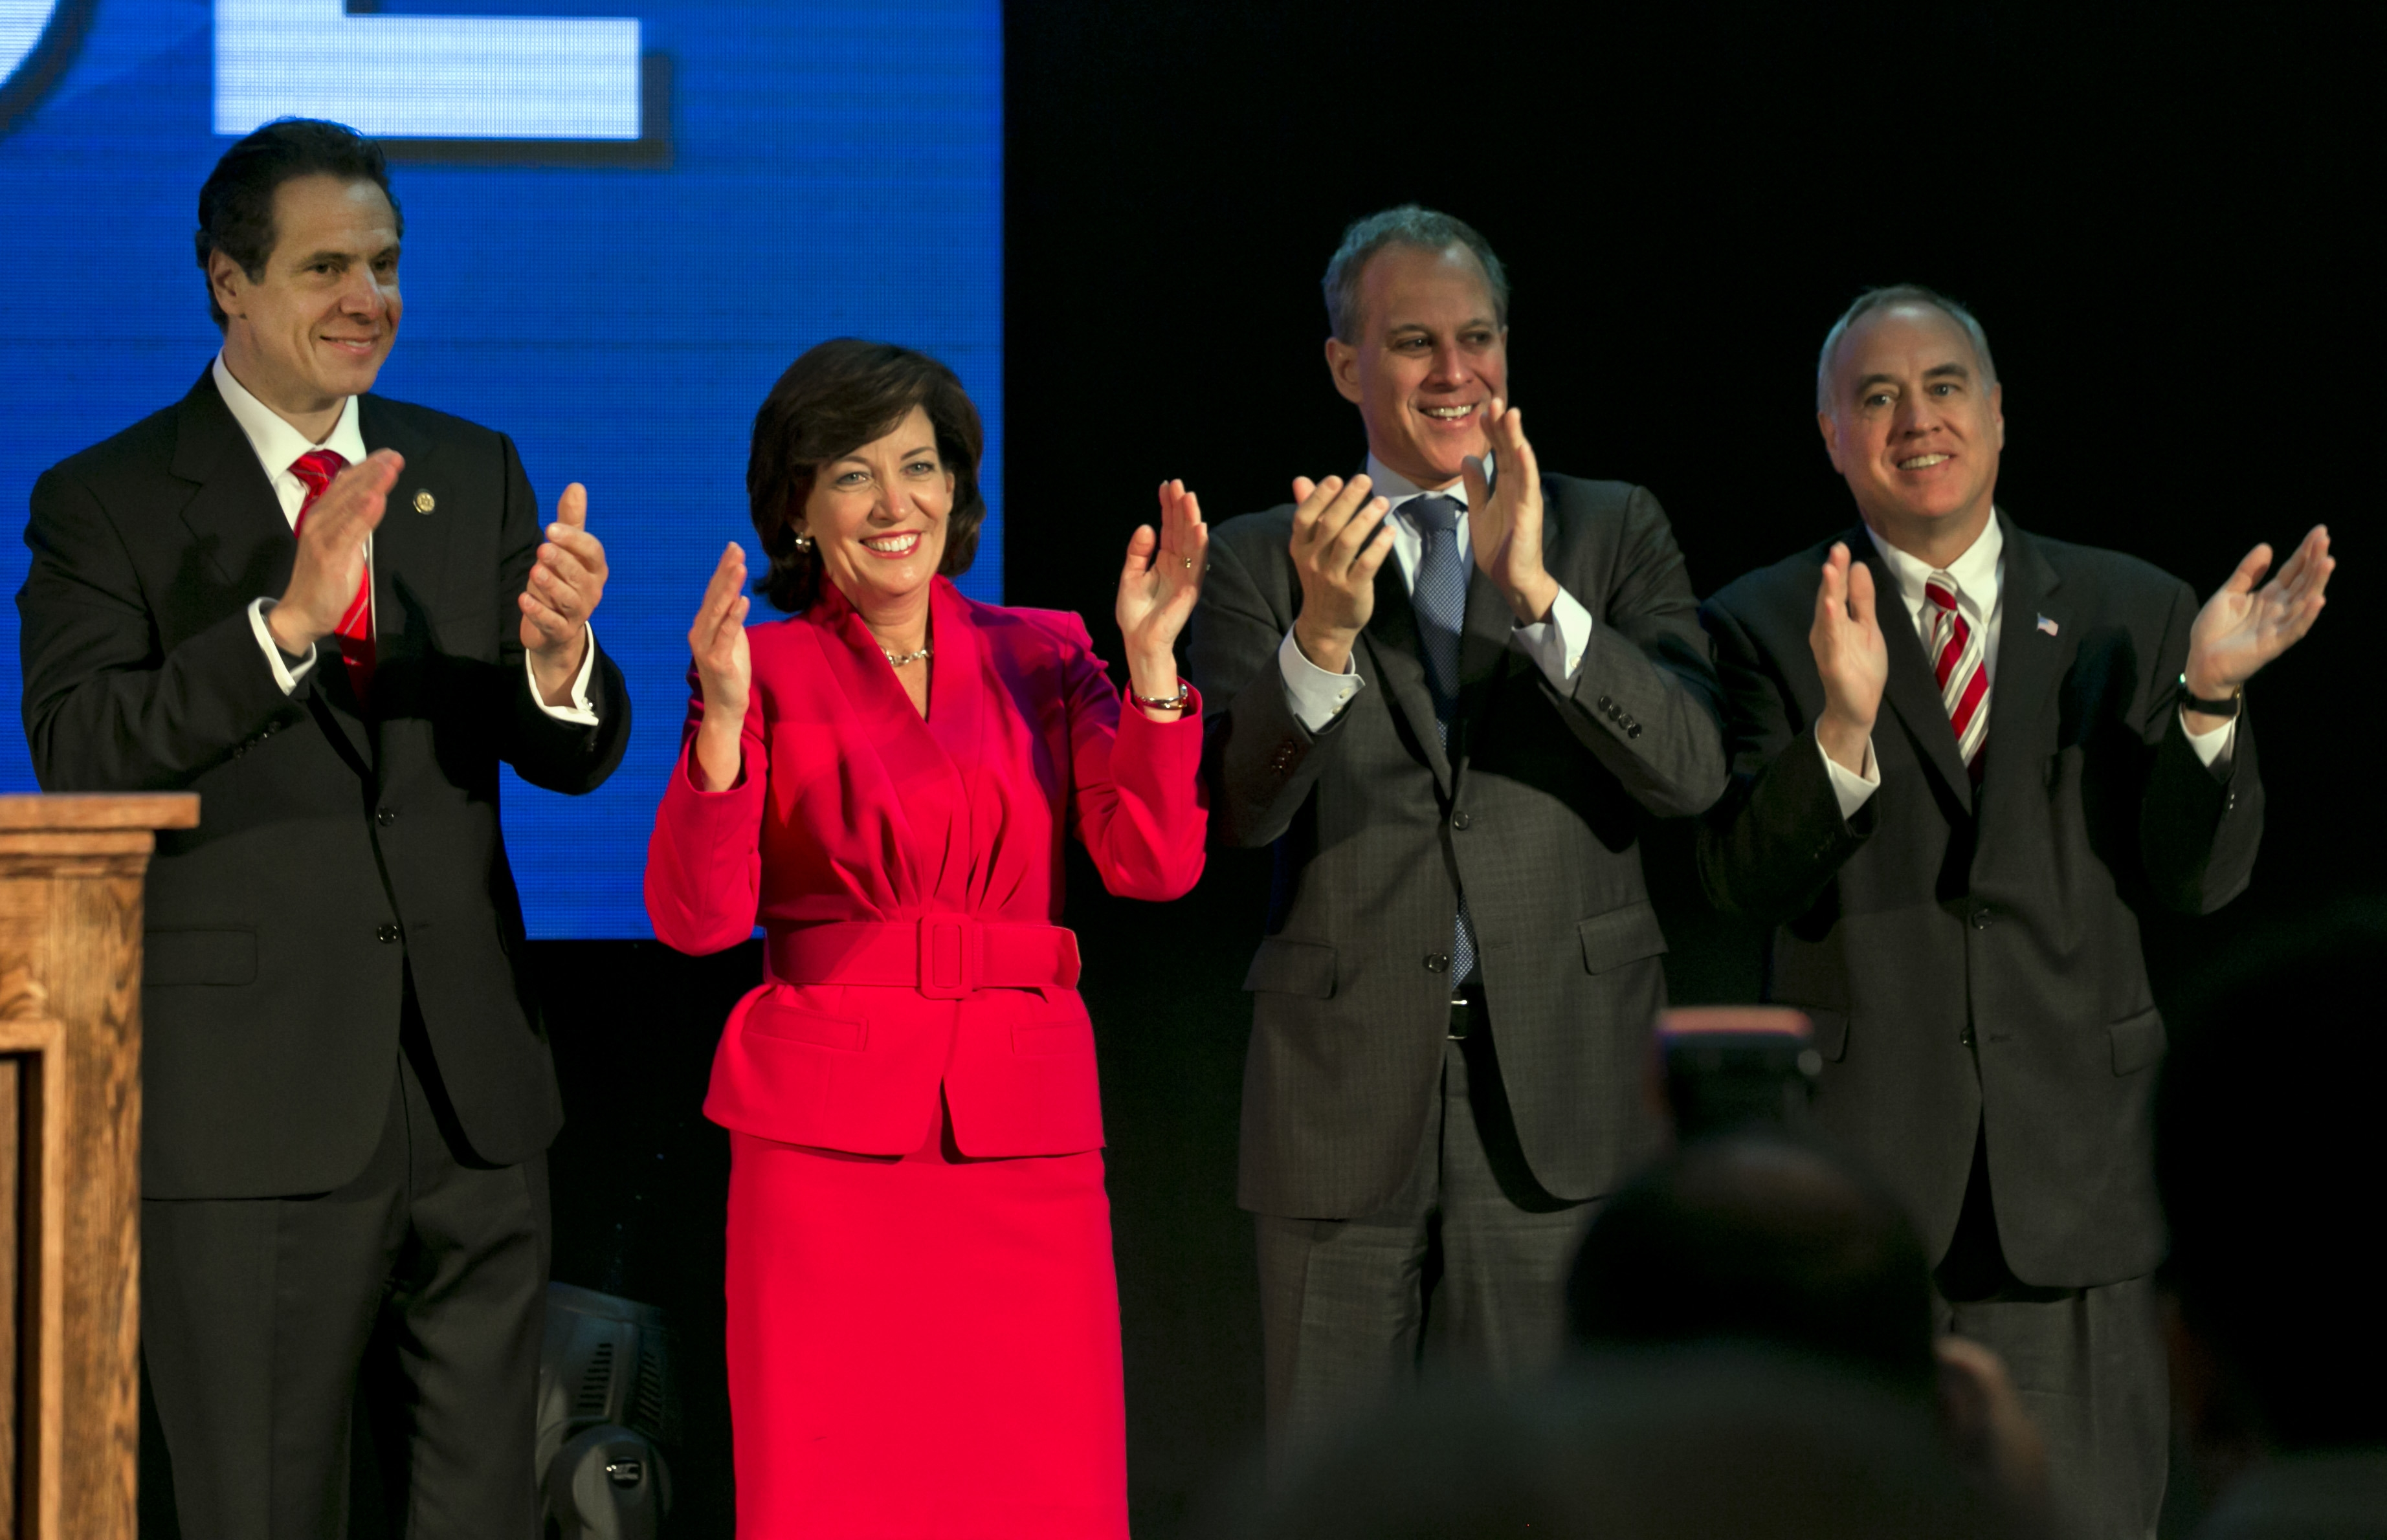 Nominees N.Y. Gov. Andrew Cuomo, his running mate, former Congresswoman Kathy Hochul, state Attorney Gen. Eric Schneiderman, and state Comptroller Thomas DiNapoli, left to right, acknowledge applause after Cuomo's speech at the state's Democratic Convention today. (AP Photo/Richard Drew)